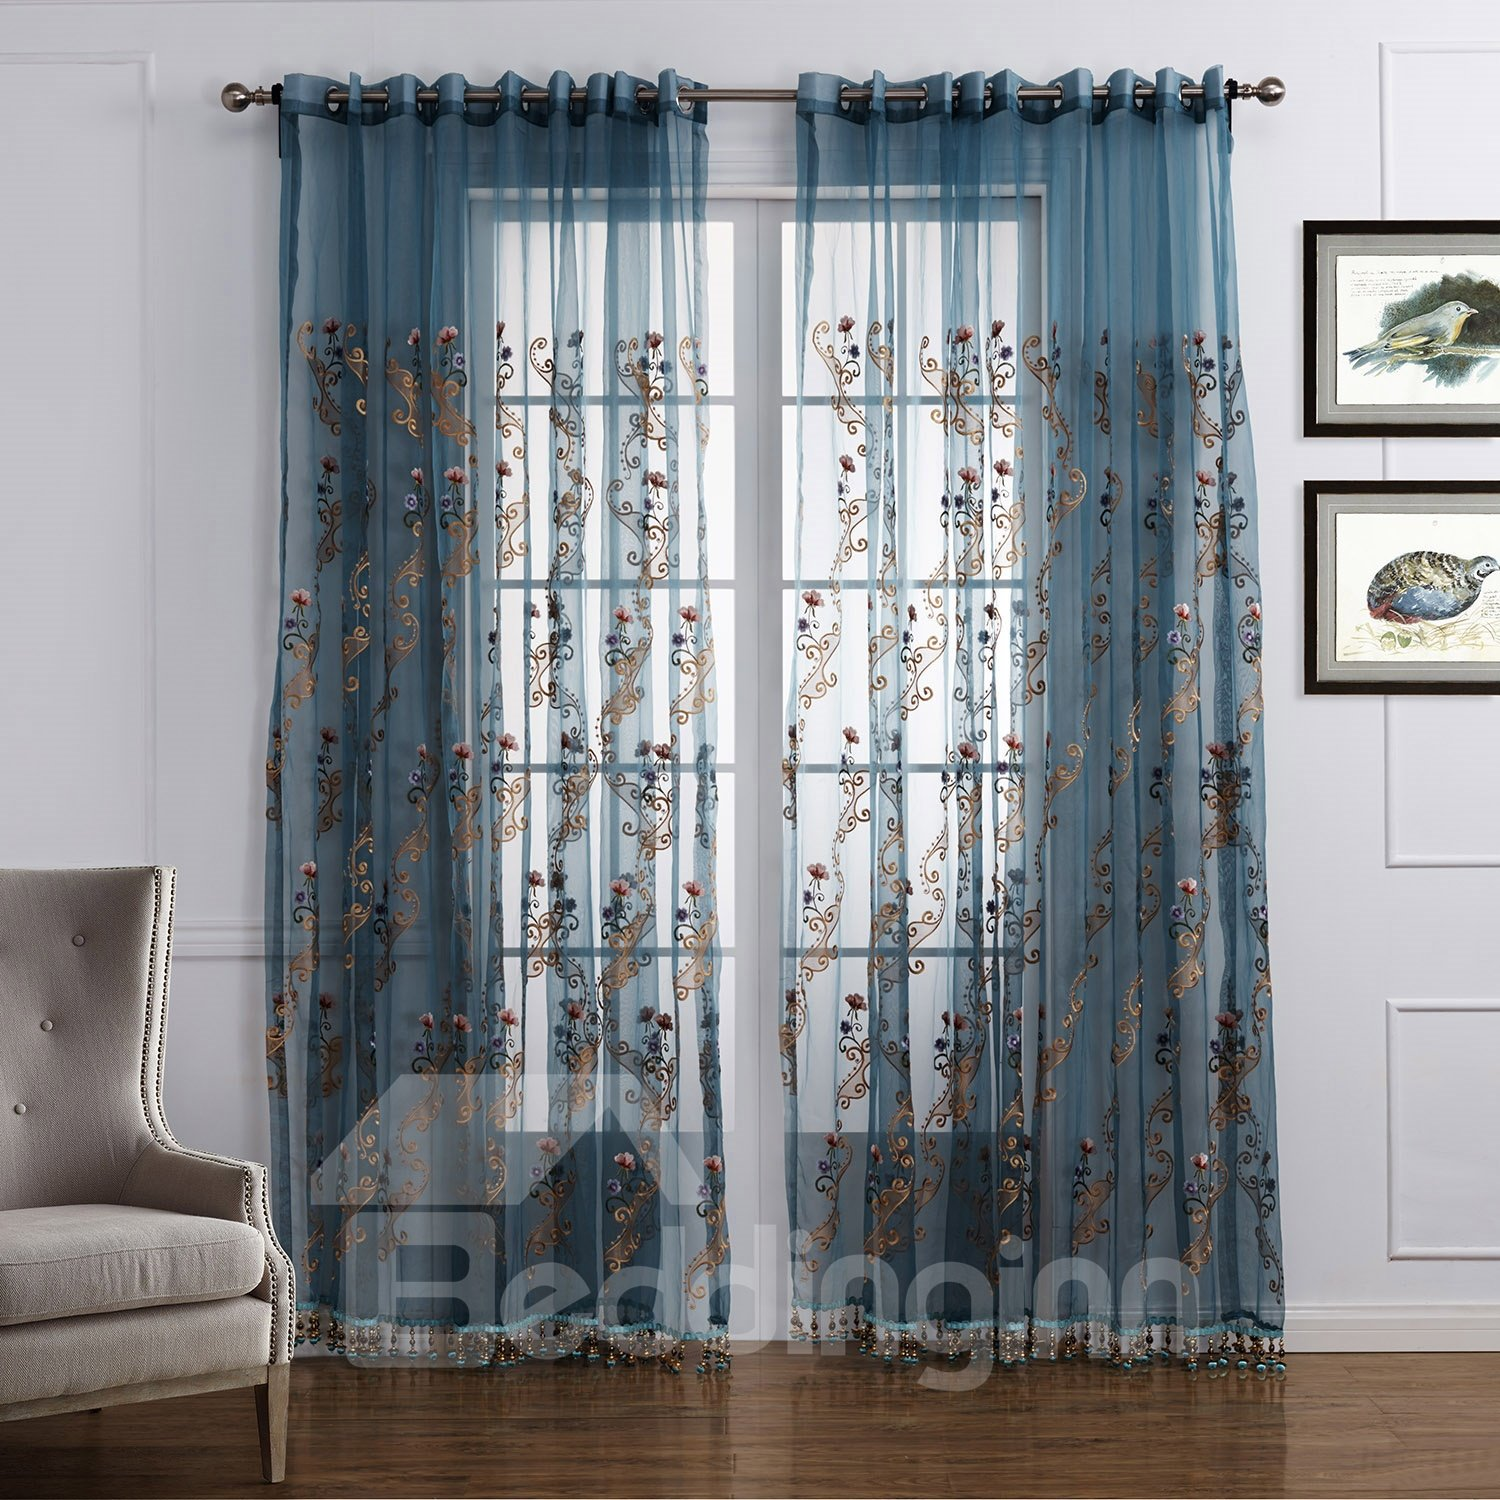 Wonderful Floral Pattern Custom Sheer Curtain Beddinginn Com